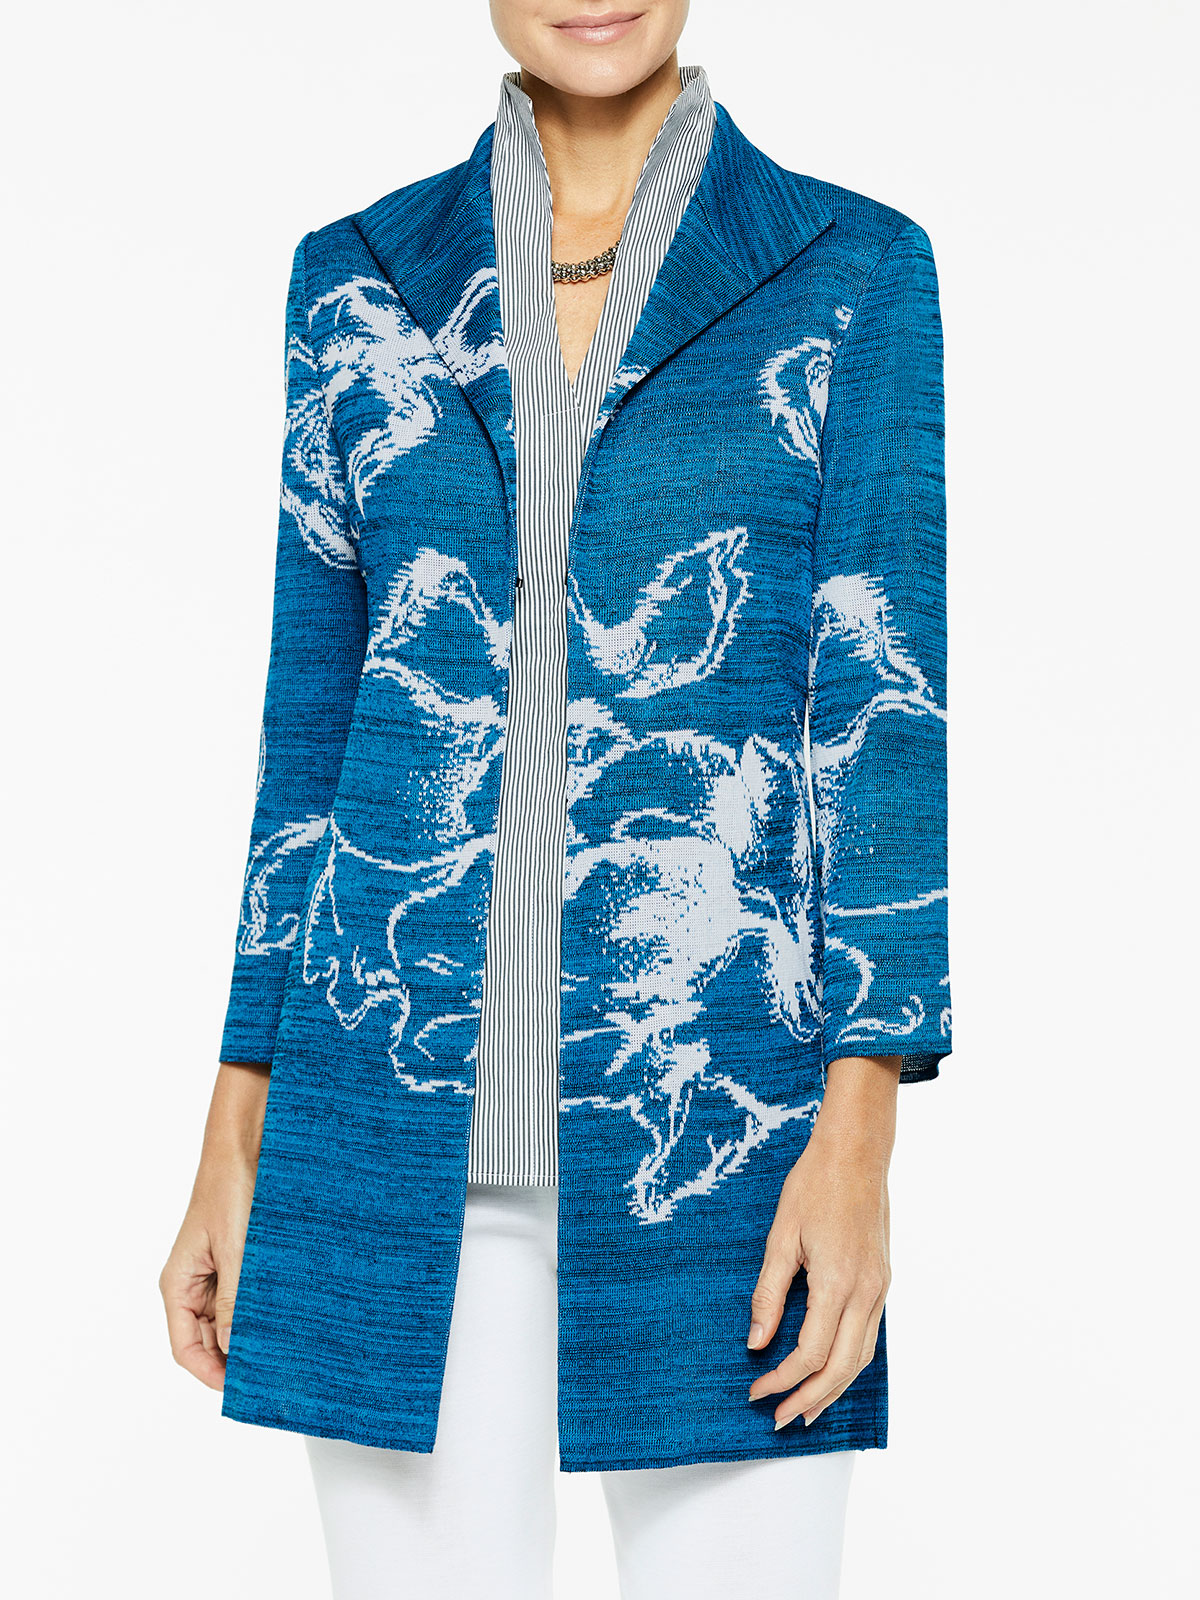 Floral Jacquard Knit Duster Color Harbor Blue/Black/White